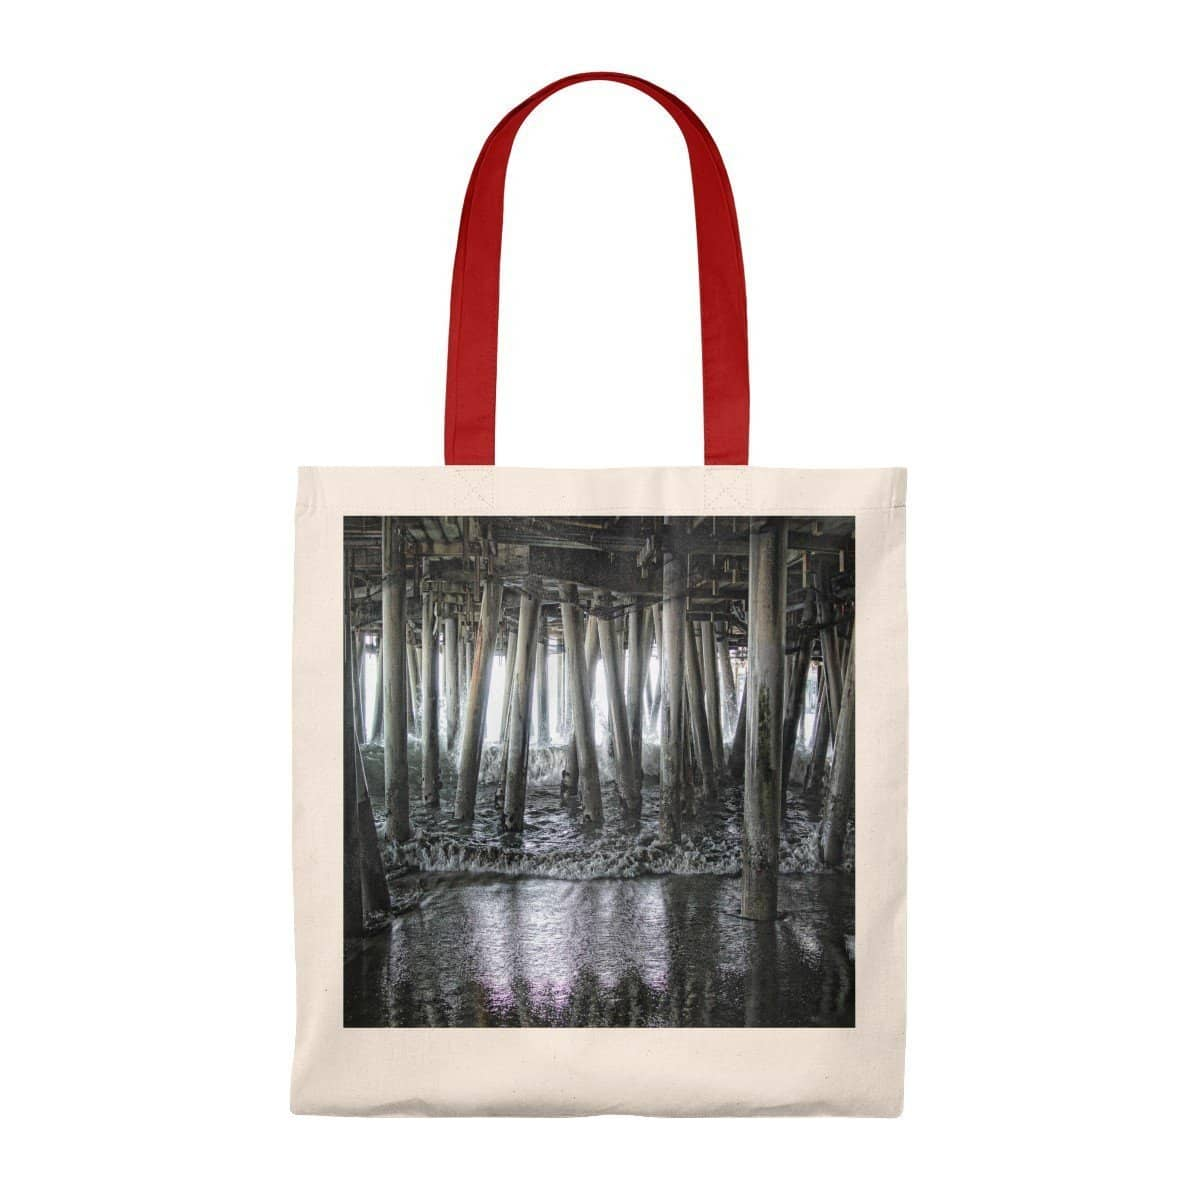 Tote Bag - Vintage Under the Pier (5 Colors) Natural/Red / Small Bags (2854226231396)